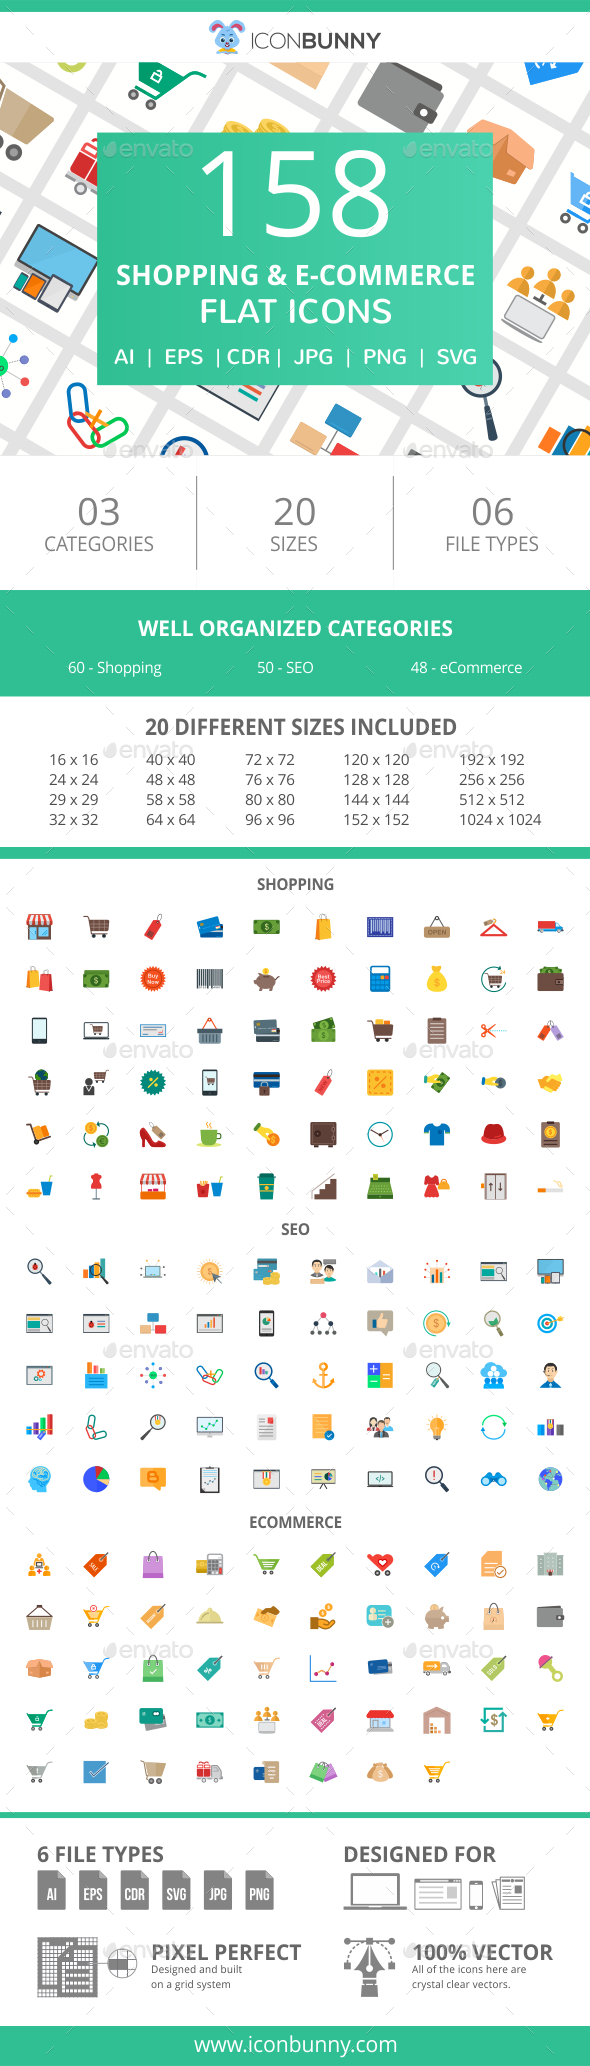 GraphicRiver 158 Shopping & E-Commerce Flat Icons 20995009